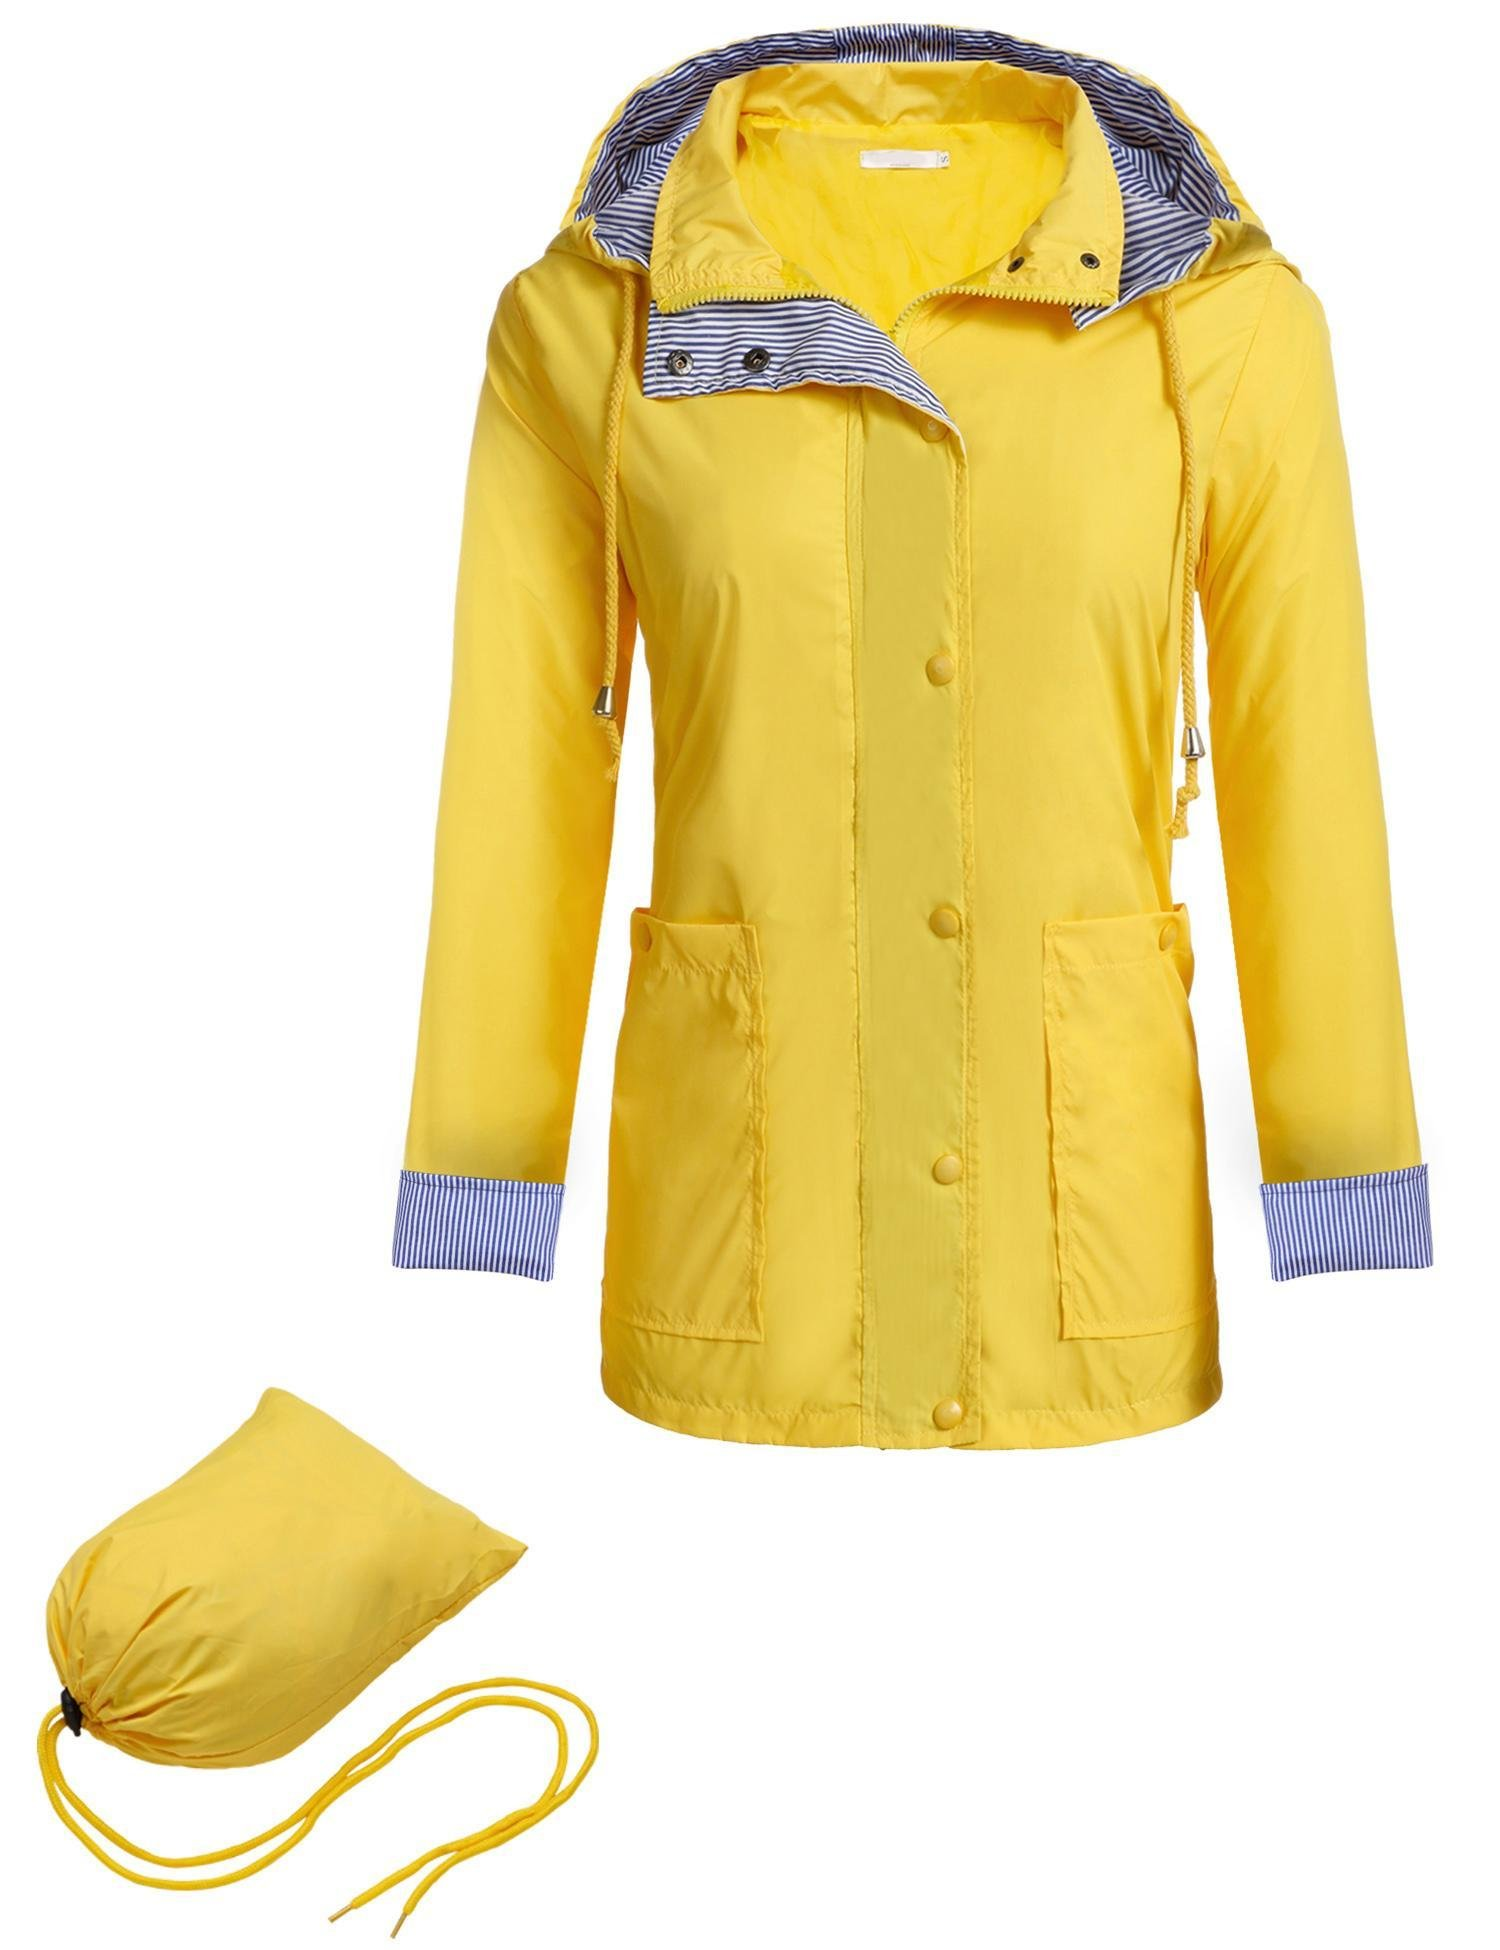 Zeagoo Women Waterproof Raincoat Packable Outdoor Hooded Rain Jacket, Style 1 Yellow, Small